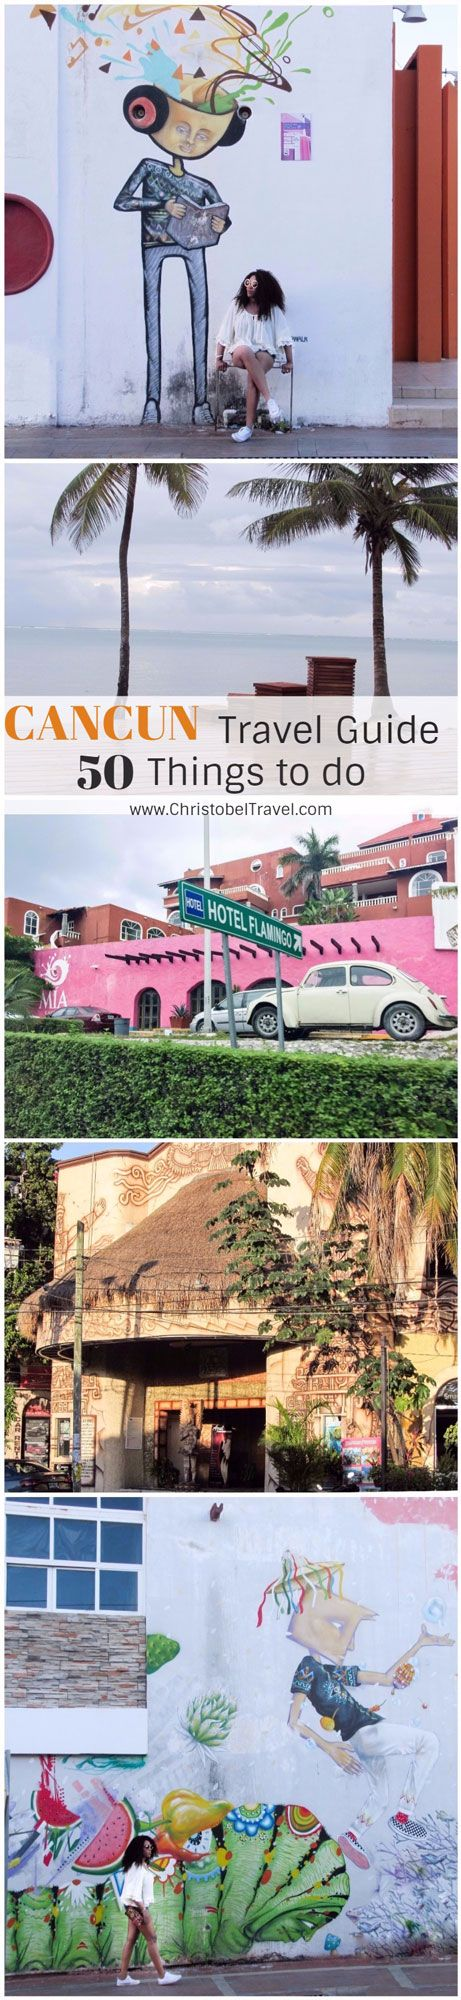 Cancun Travel Guide: 50 Things to do in #Cancun, Yucatan, Mexico. Activities include dolphins, hotel zone area / zona hotelera, downtown quintana roo, nightlife, restaurants, Mayan ruins, shopping, underwater museums & caves, xcaret riviera maya, xplor, yacht to playa del carmen. All inclusive resorts / destination beach weddings, honeymoon & engagements. Excursions / Day trips to Chichen Itza & Cenote Ik Kil. Explore family vacations, girls trip ideas, photography #christobeltravel